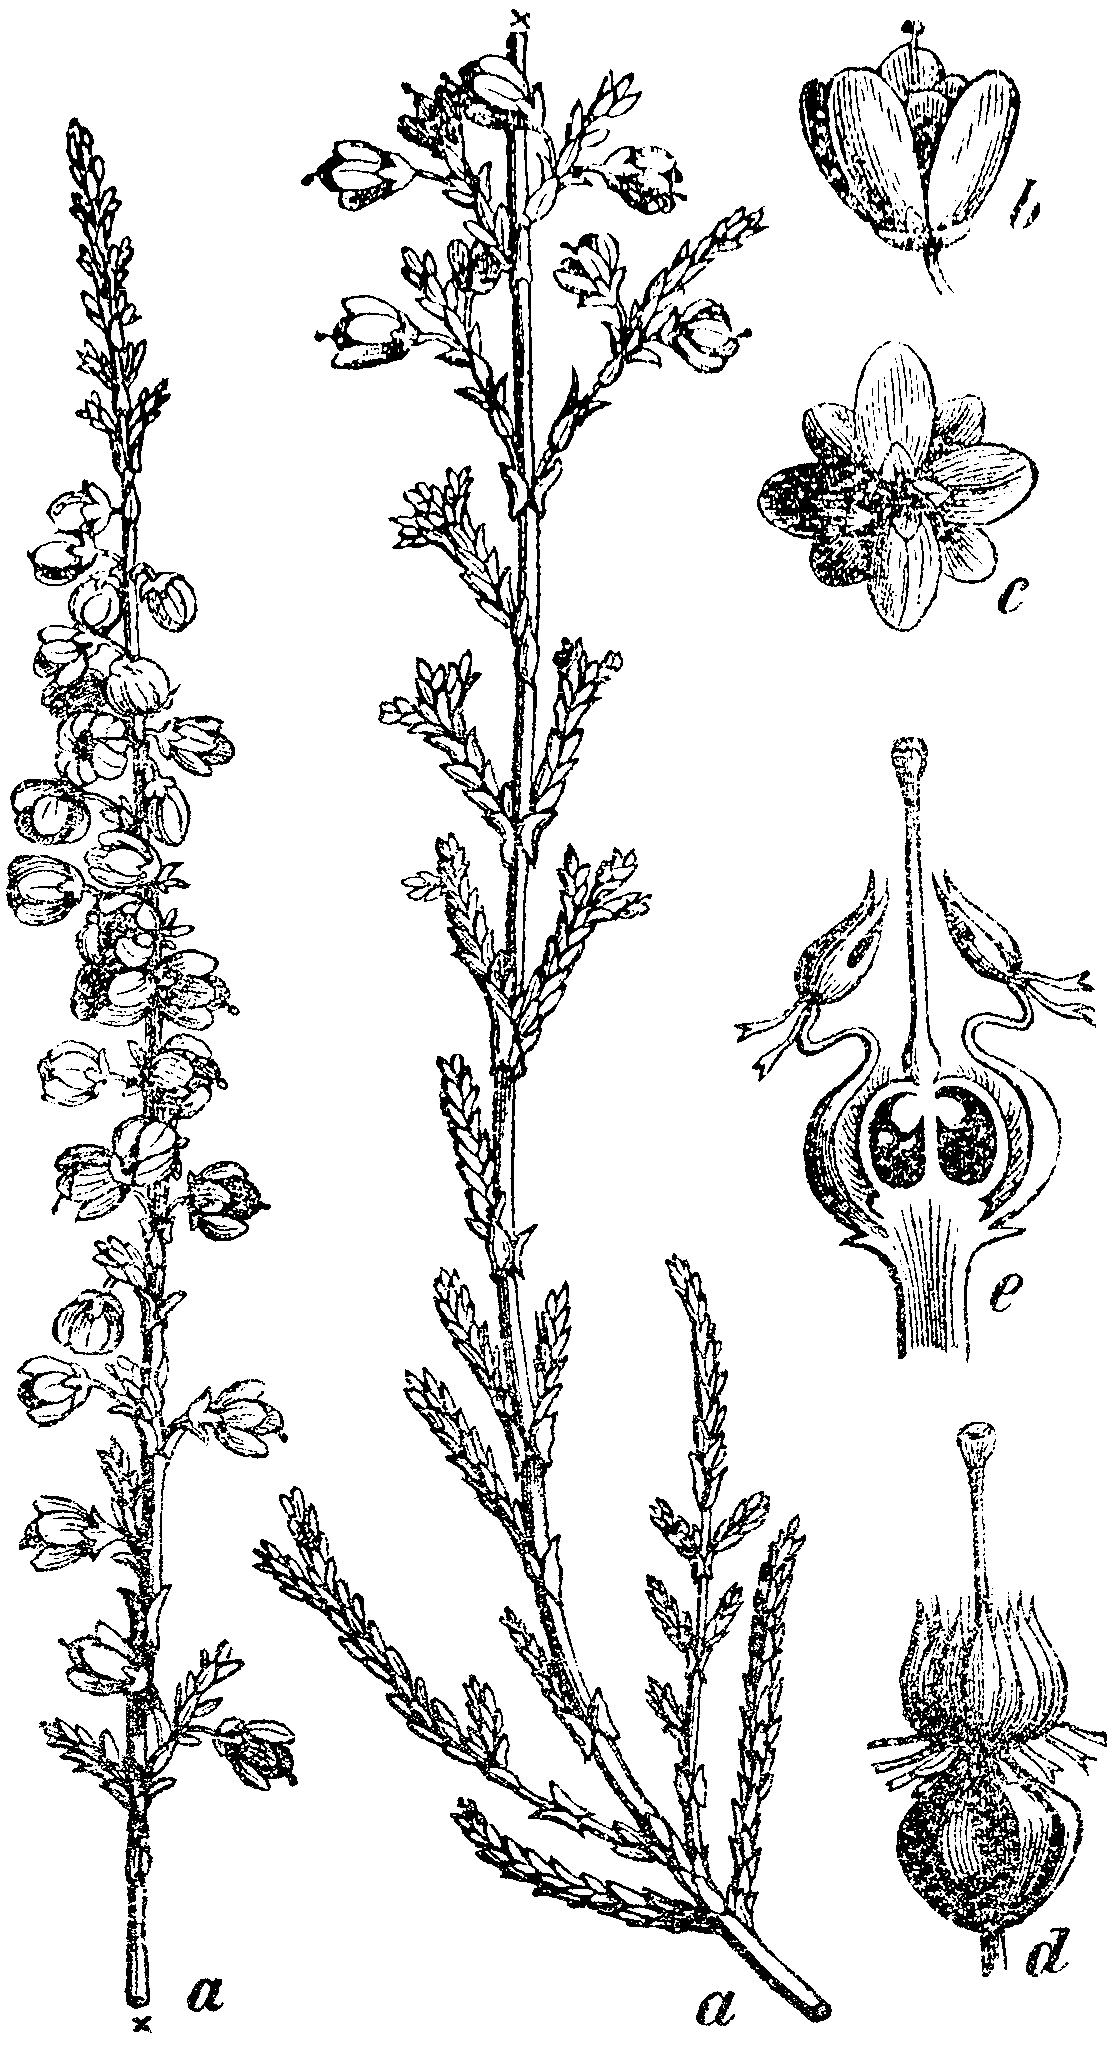 Botanical Illustration Heather Calluna Vulgaris Left One Is Scottish Blooming Heather For Crickett Tattoo Wildflower Tattoo Heather Flower Flower Tattoos